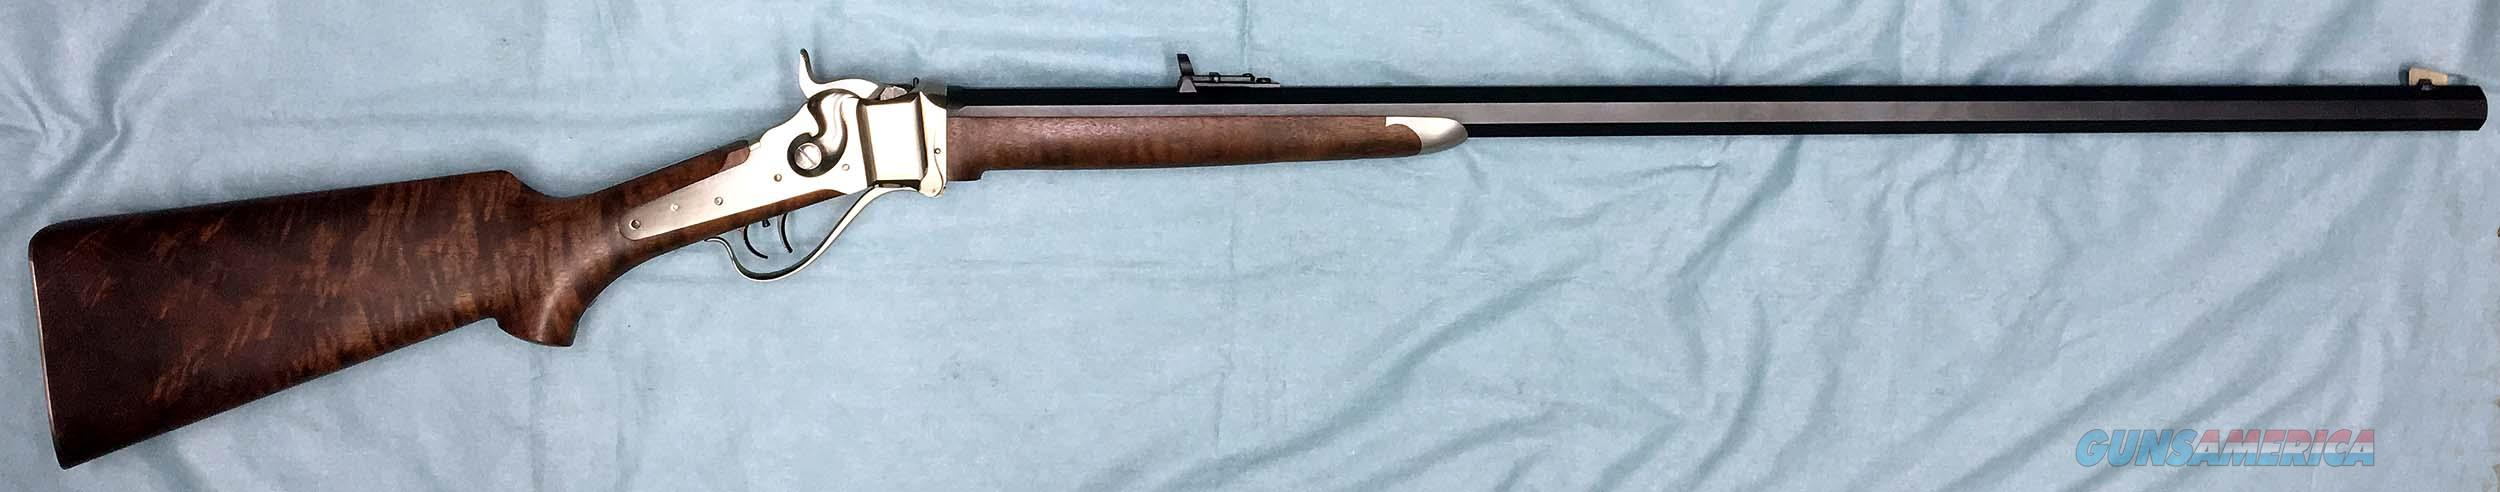 UNFIRED C. SHARPS 1874 SPORTING RIFLE - .45-70 CAL.  Guns > Rifles > Sharps Rifles - Replica